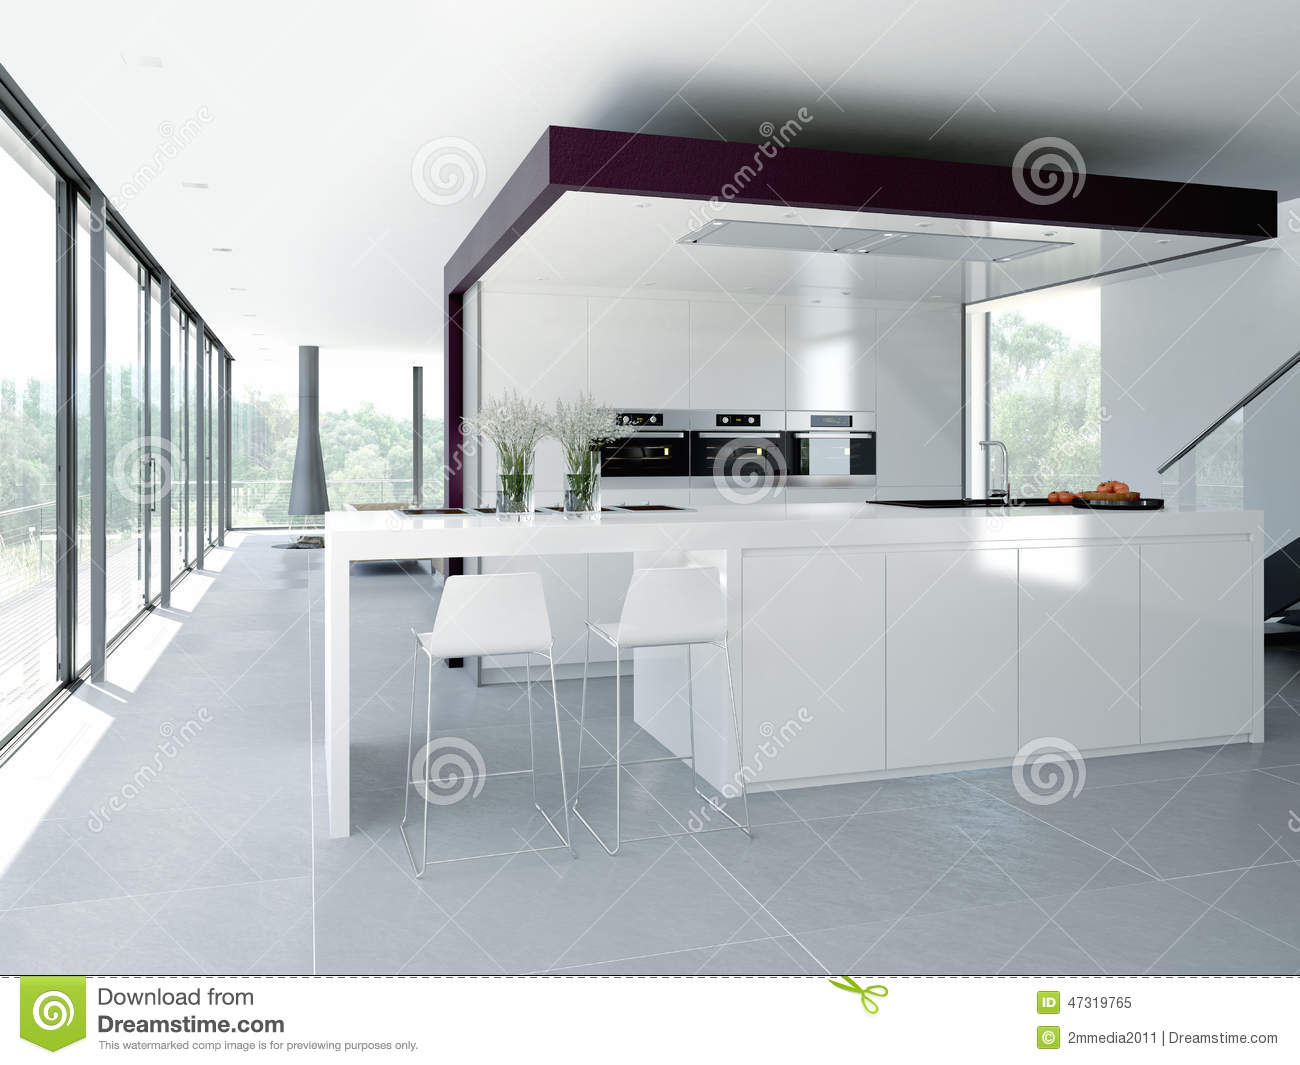 Modern kitchen interior design concept 3d stock image Clean modern interior design